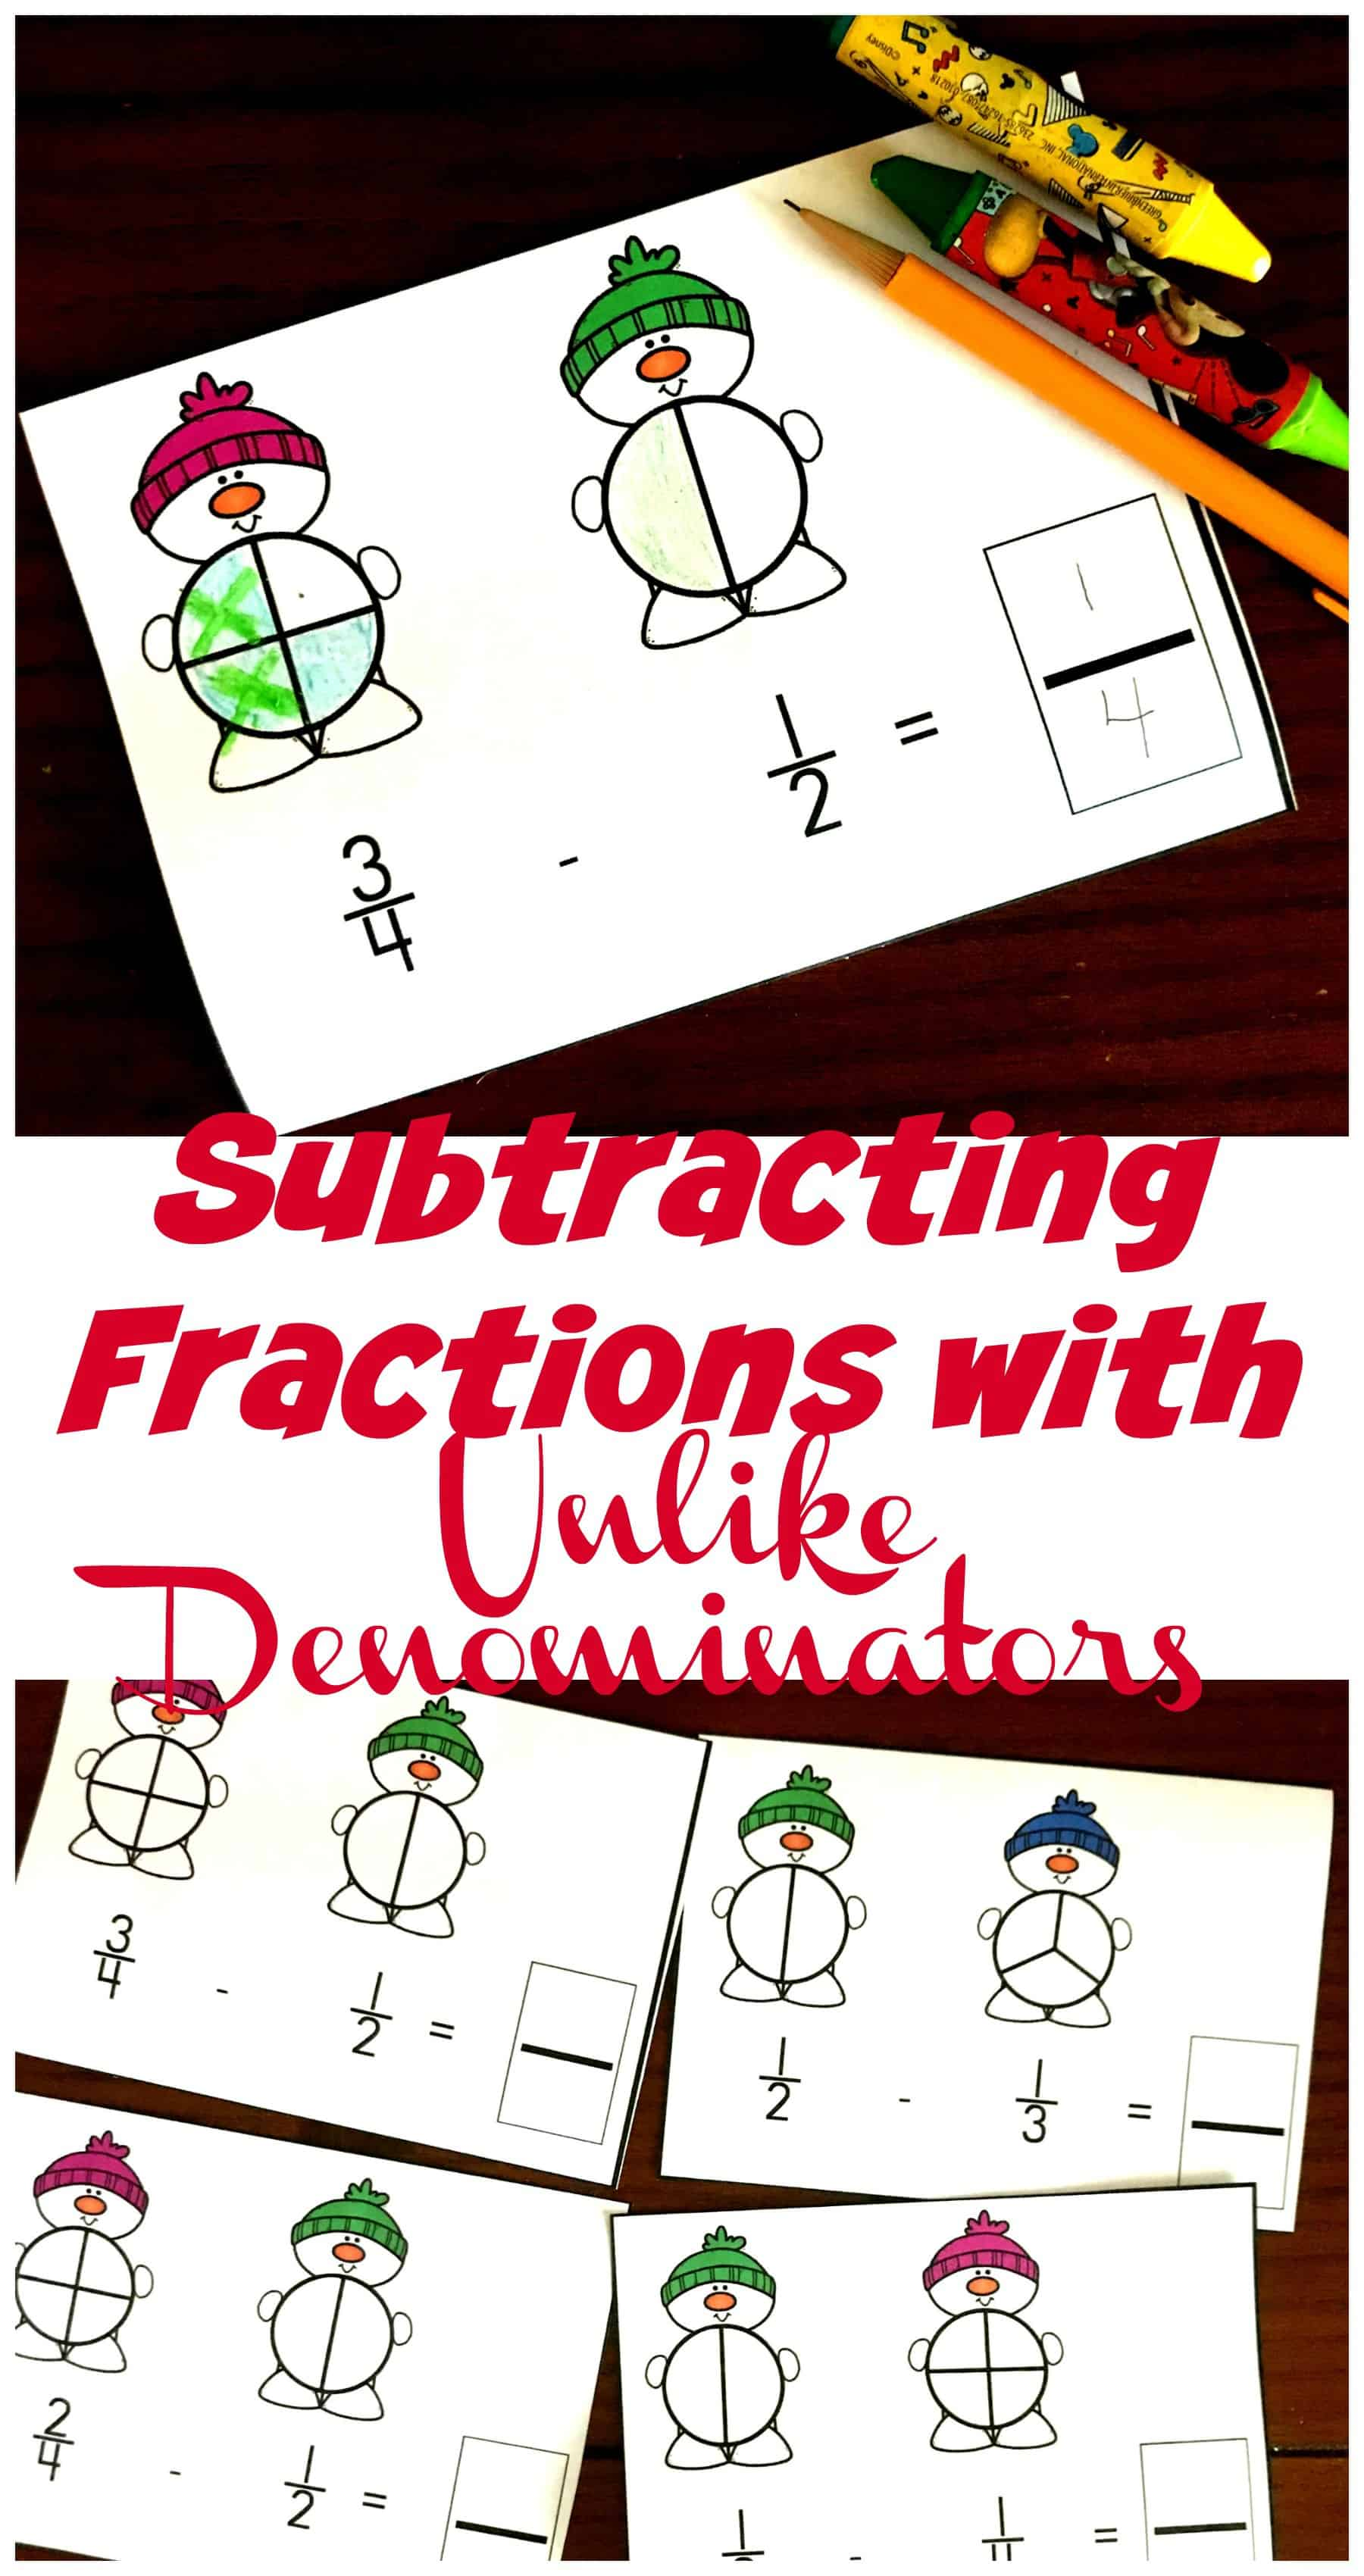 Grab these adorable snowmen to help children model subtracting with, unlike denominators. They are a fun, visual way to practice this skill.